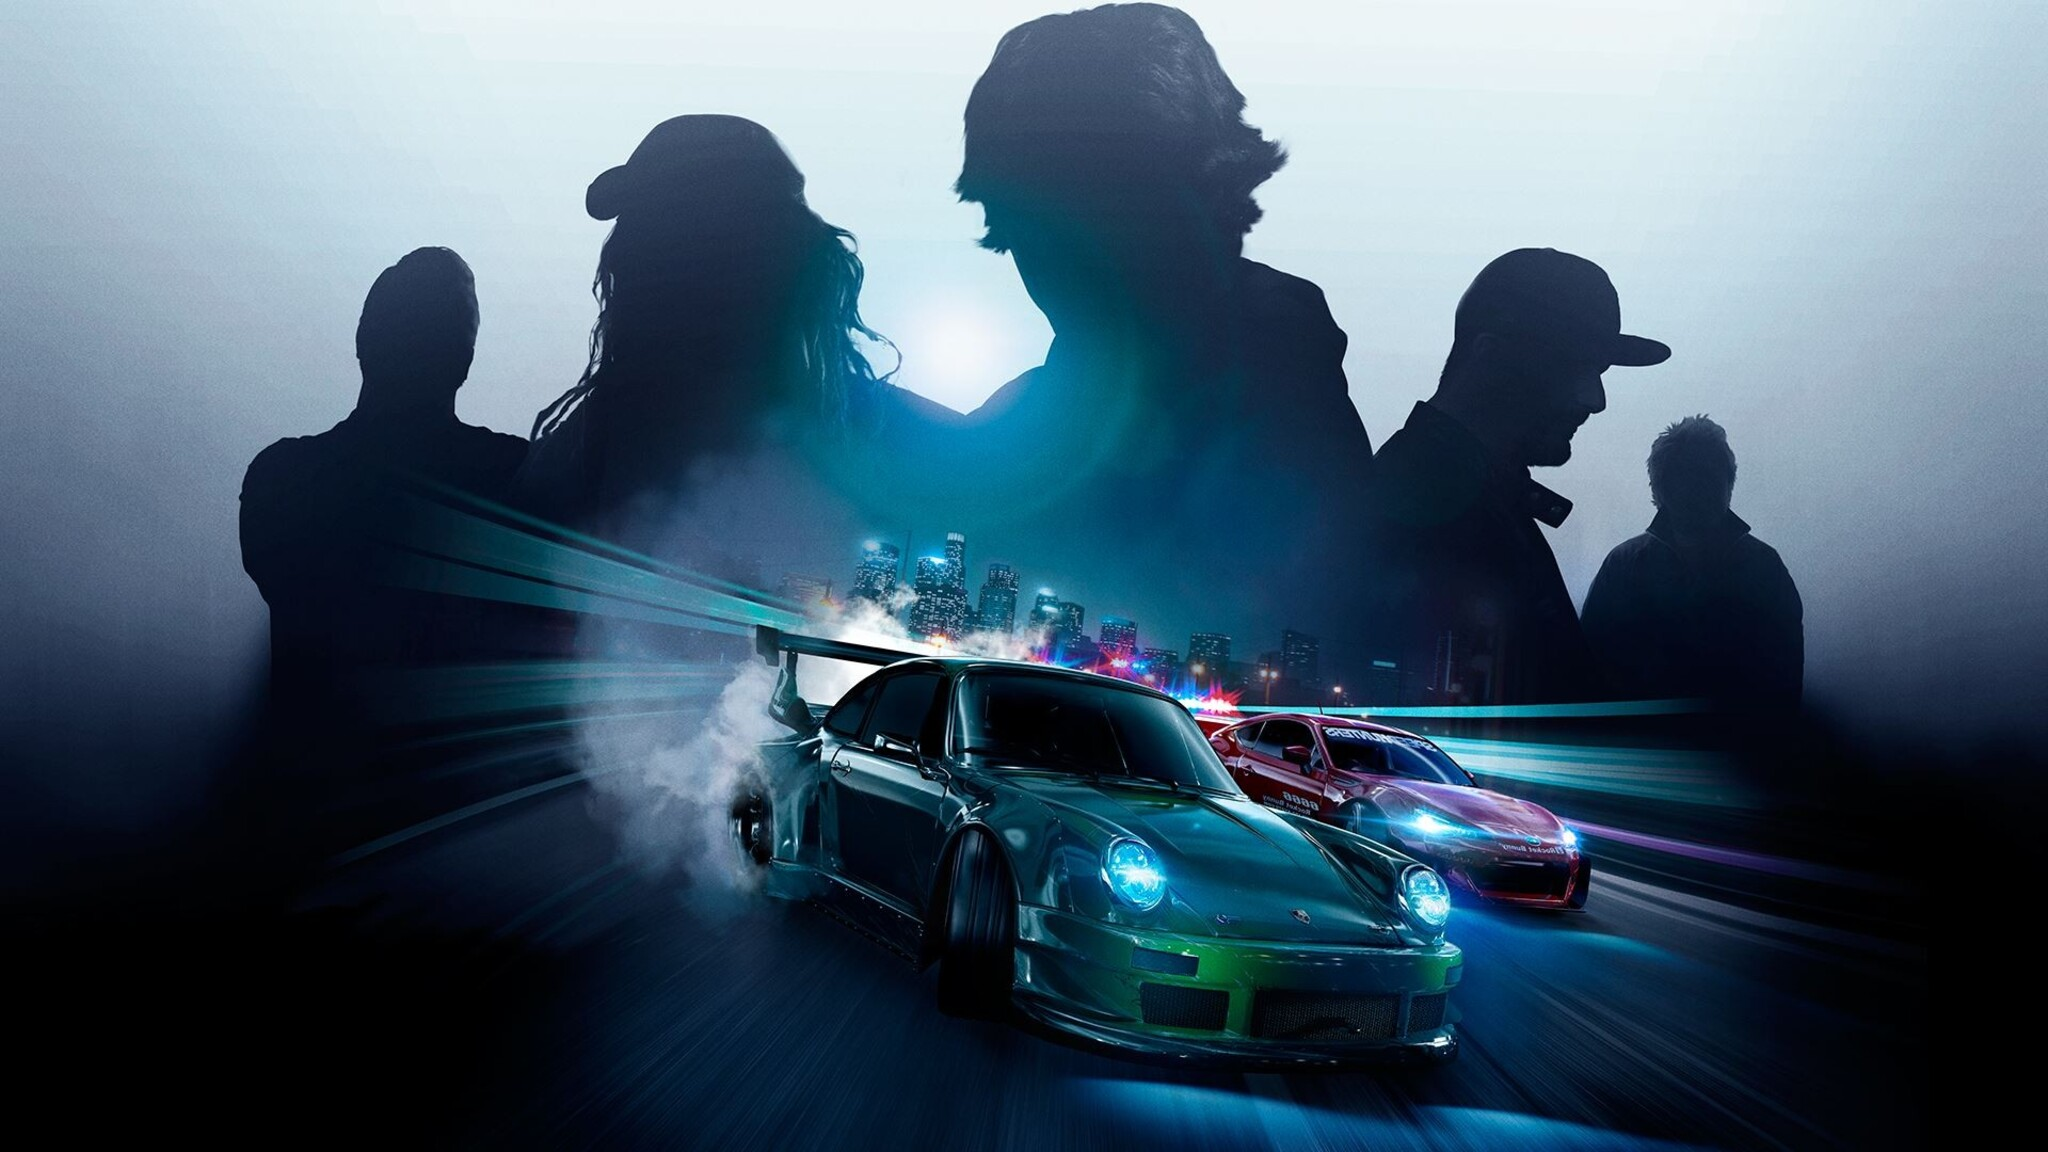 Nfs wallpapers hd for pc